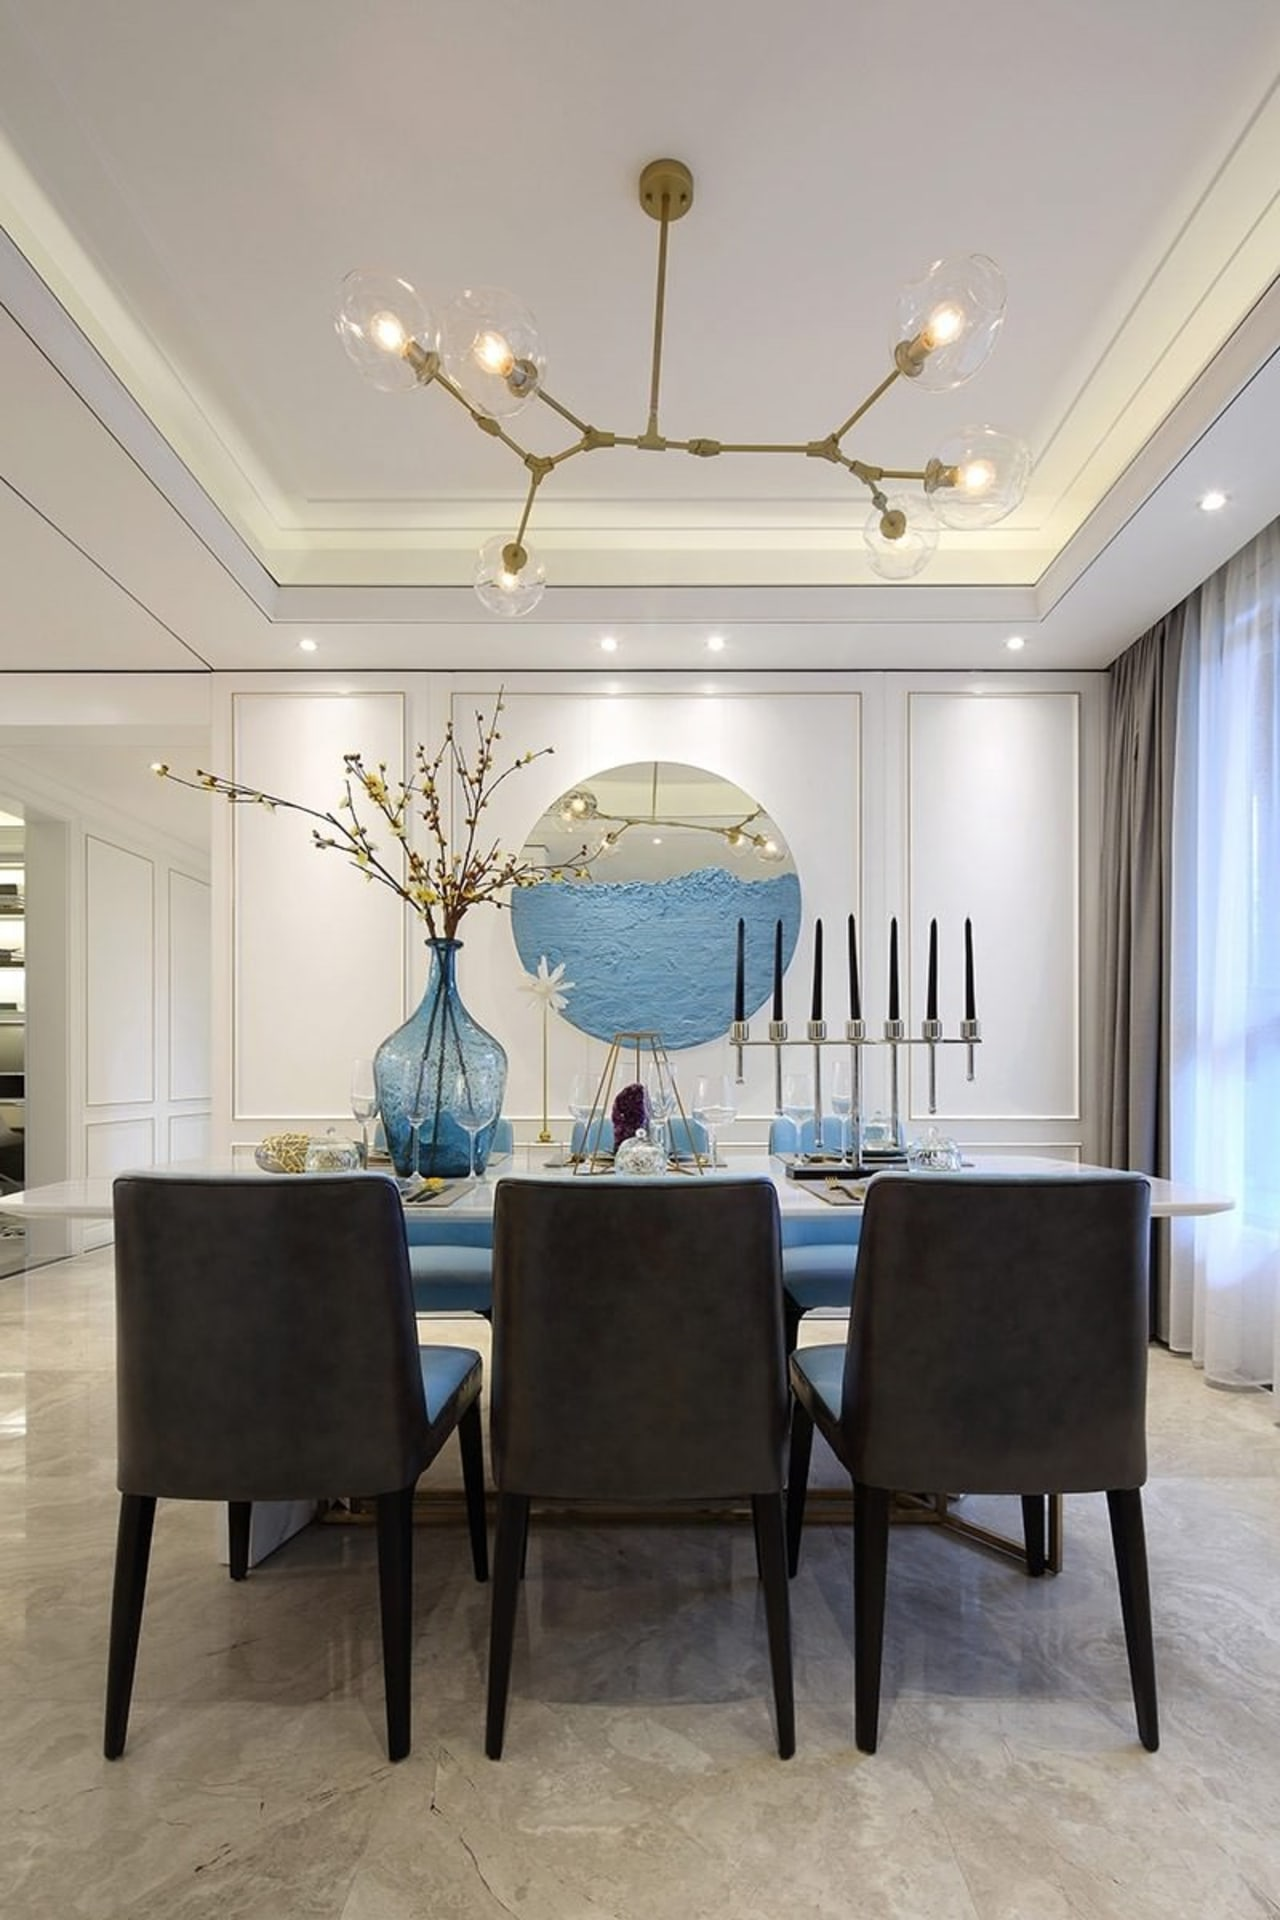 Designer: Li Jianmei Photography by Jianghe Architectural Photography ceiling, dining room, furniture, home, interior design, living room, room, table, wall, gray